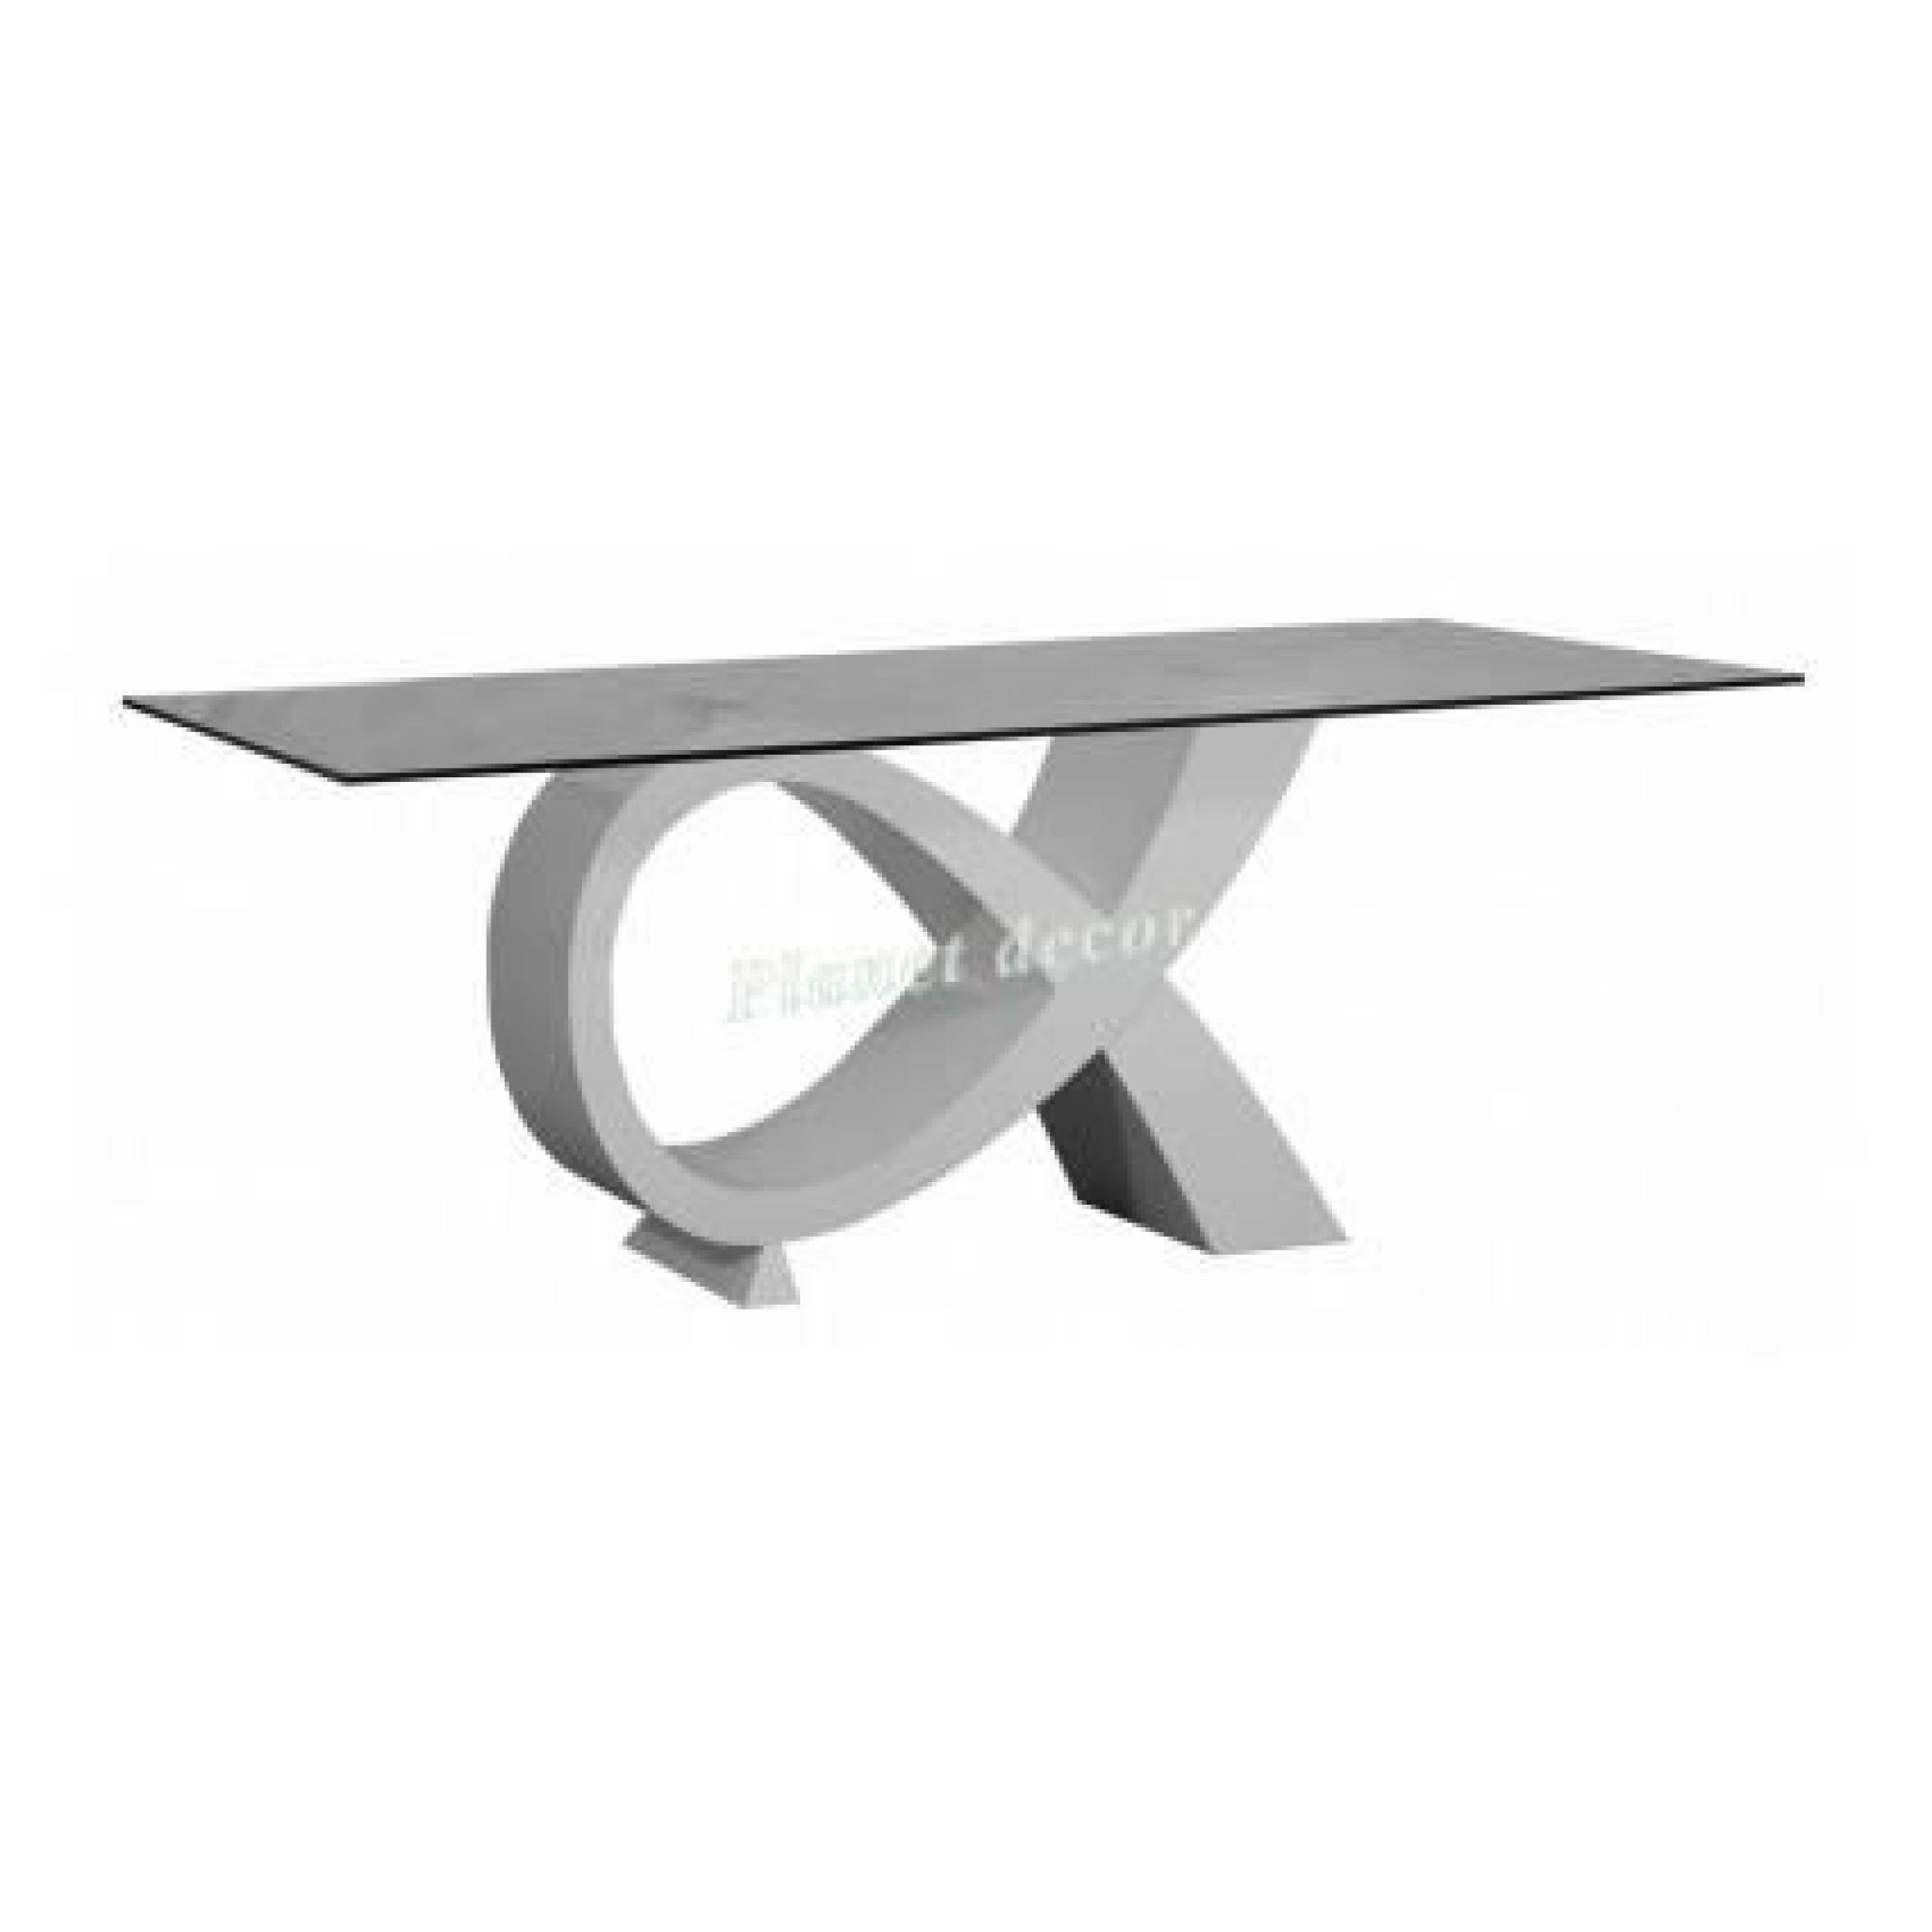 Table manger electra blanc sans chaises achat vente for Chaise table a manger blanc